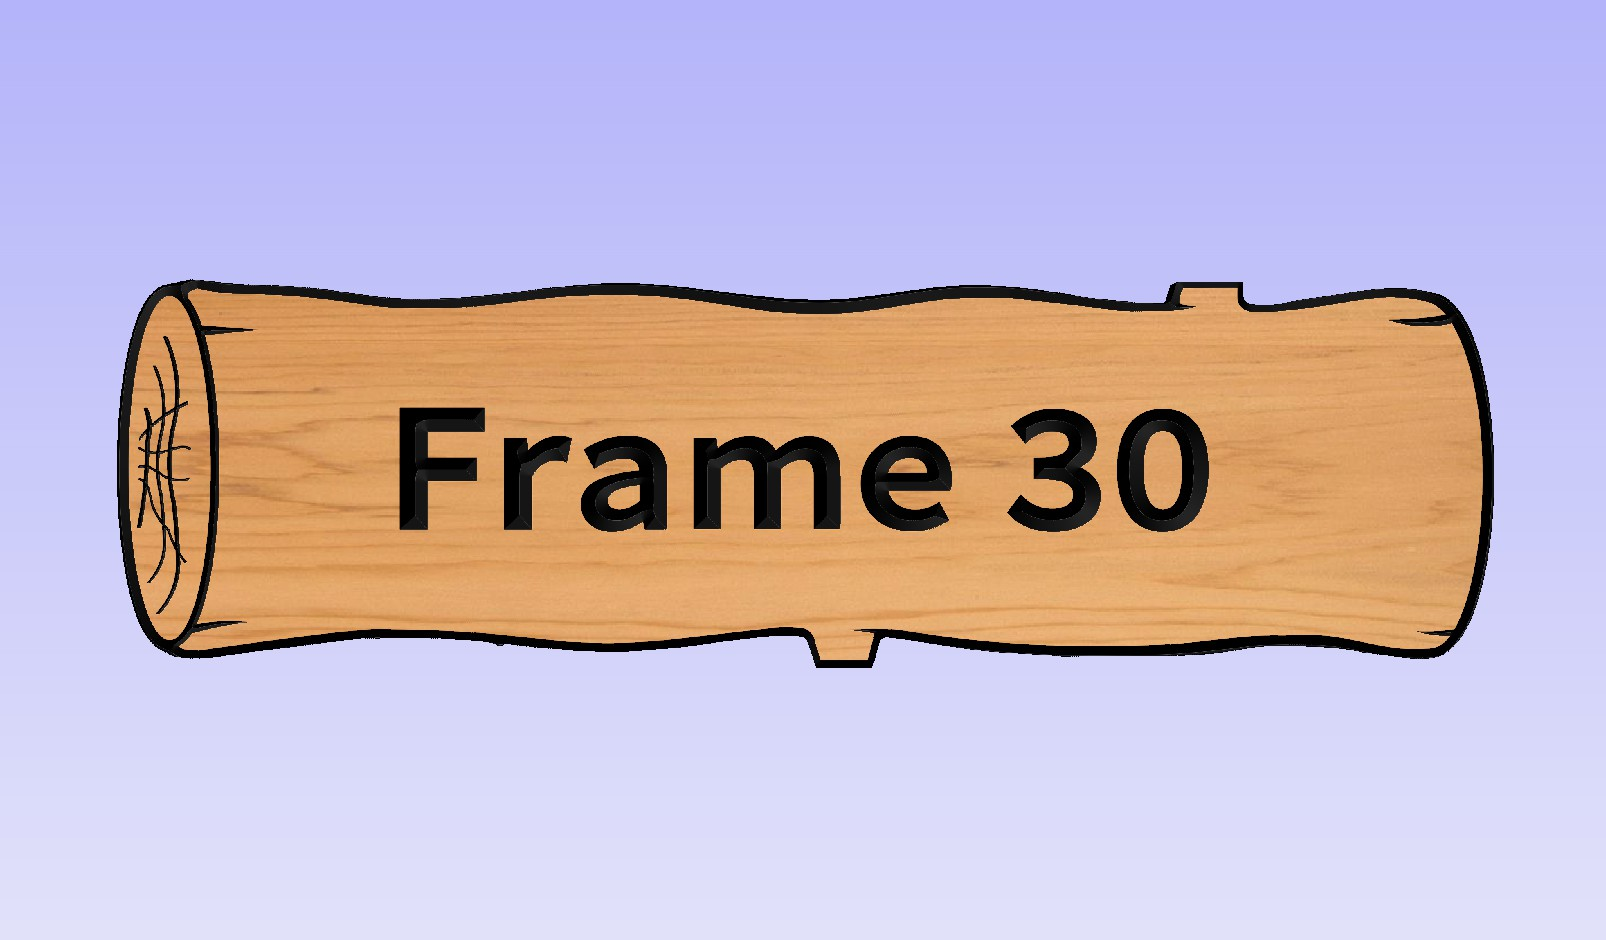 This Frame works only with a 1 board sign.